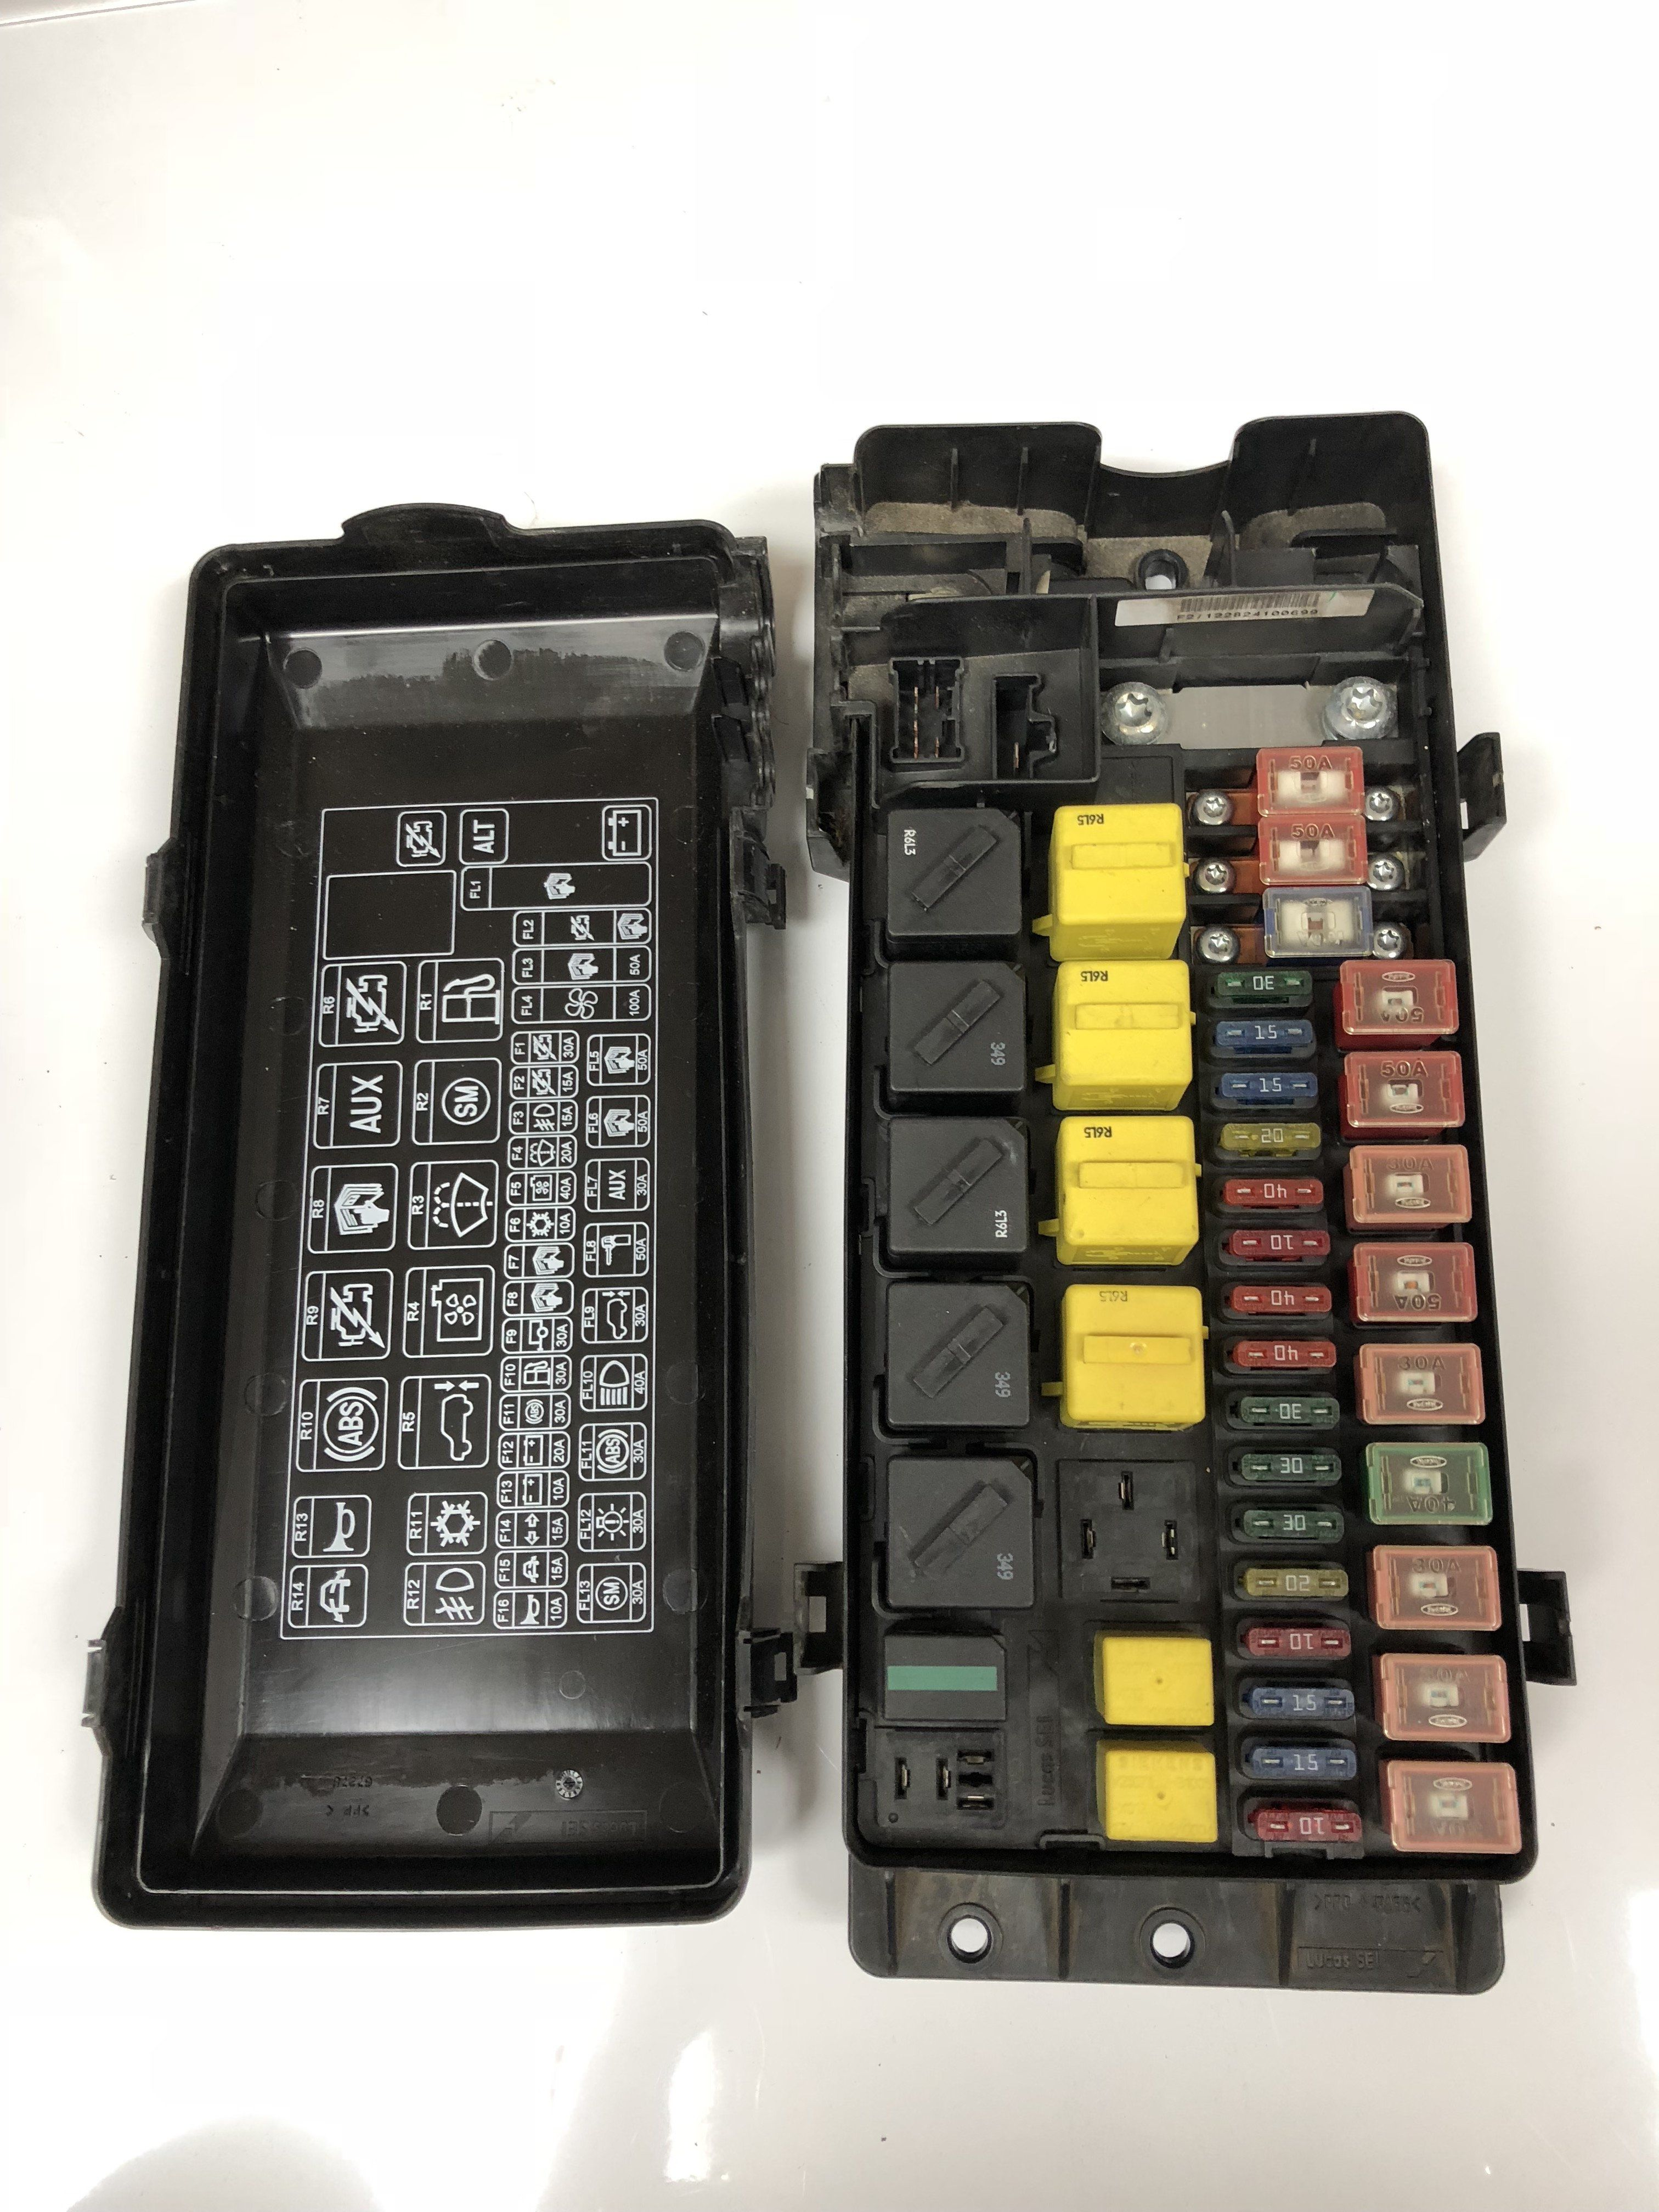 land rover discovery 2 99 04 engine compartment fuse box yqe000310 yqe103810 [ 3024 x 4032 Pixel ]